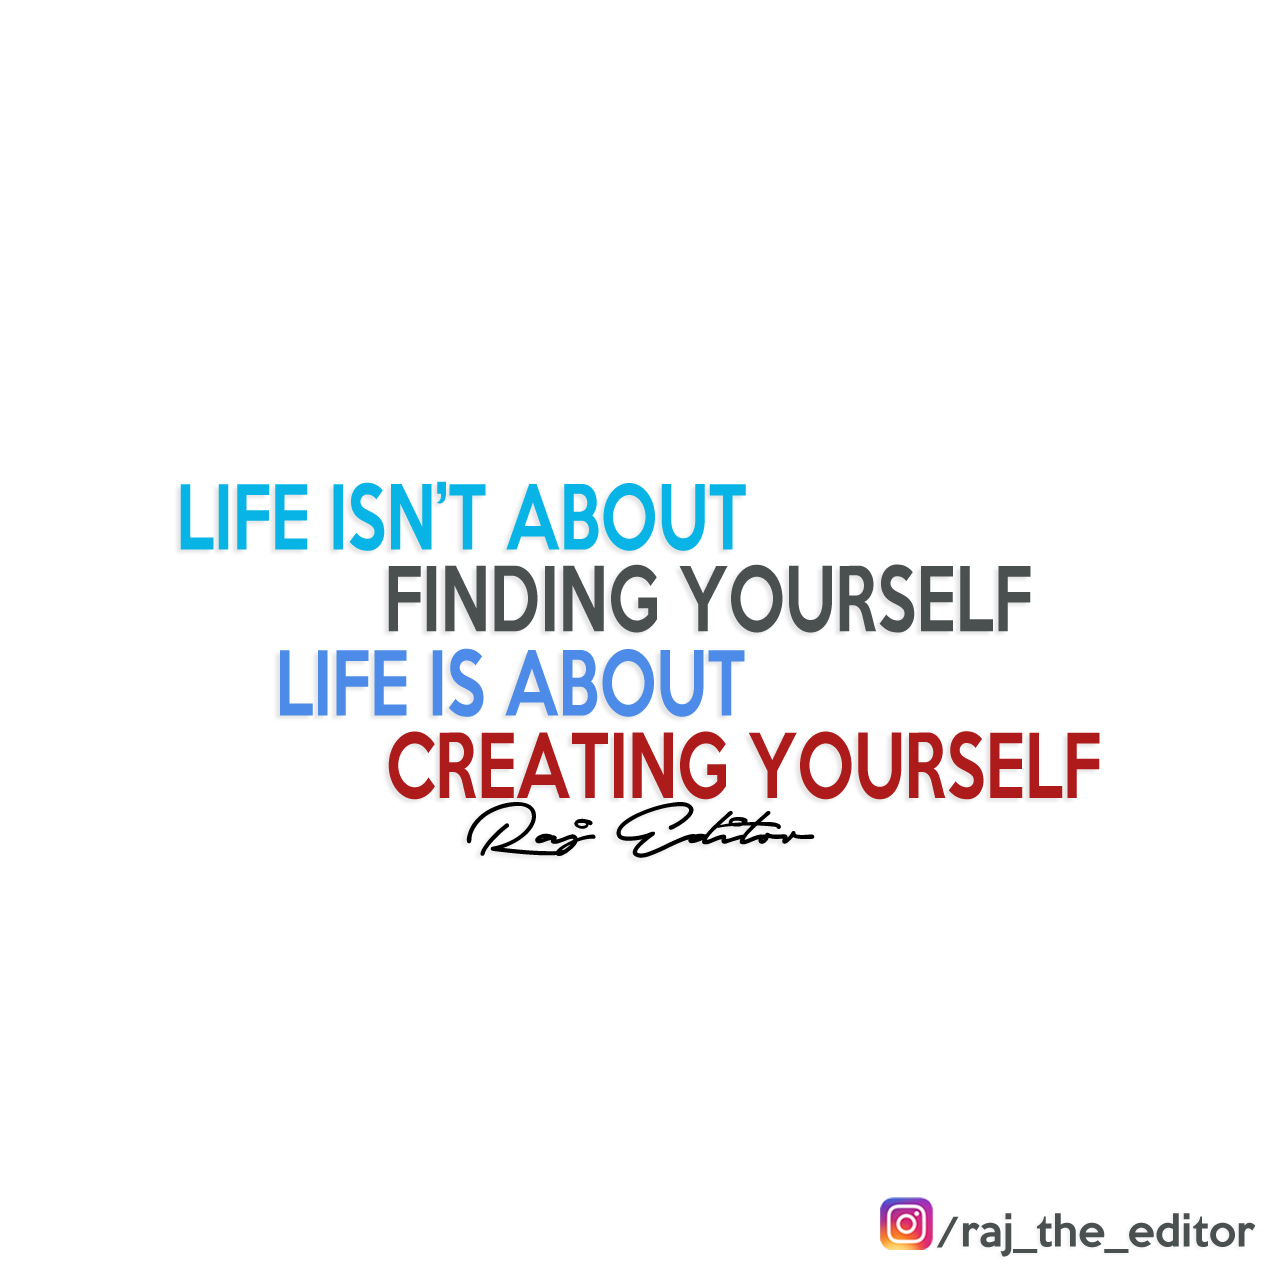 Quotes For Editing Pictures Of Yourself Nemetasfgegabeltfo